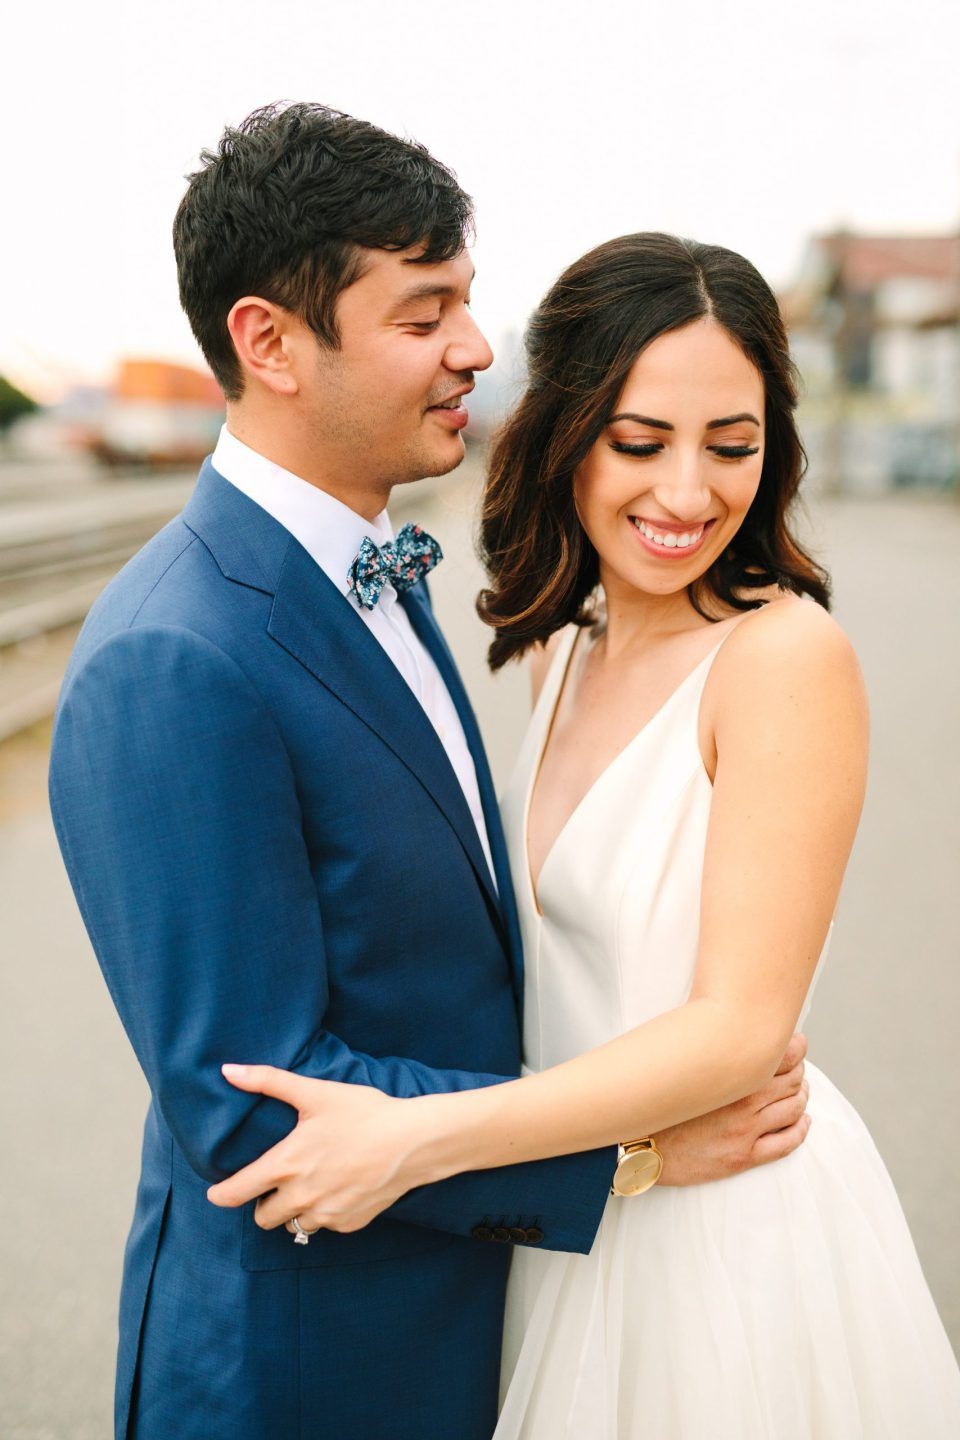 Seattle wedding portrait by Mary Costa Photography